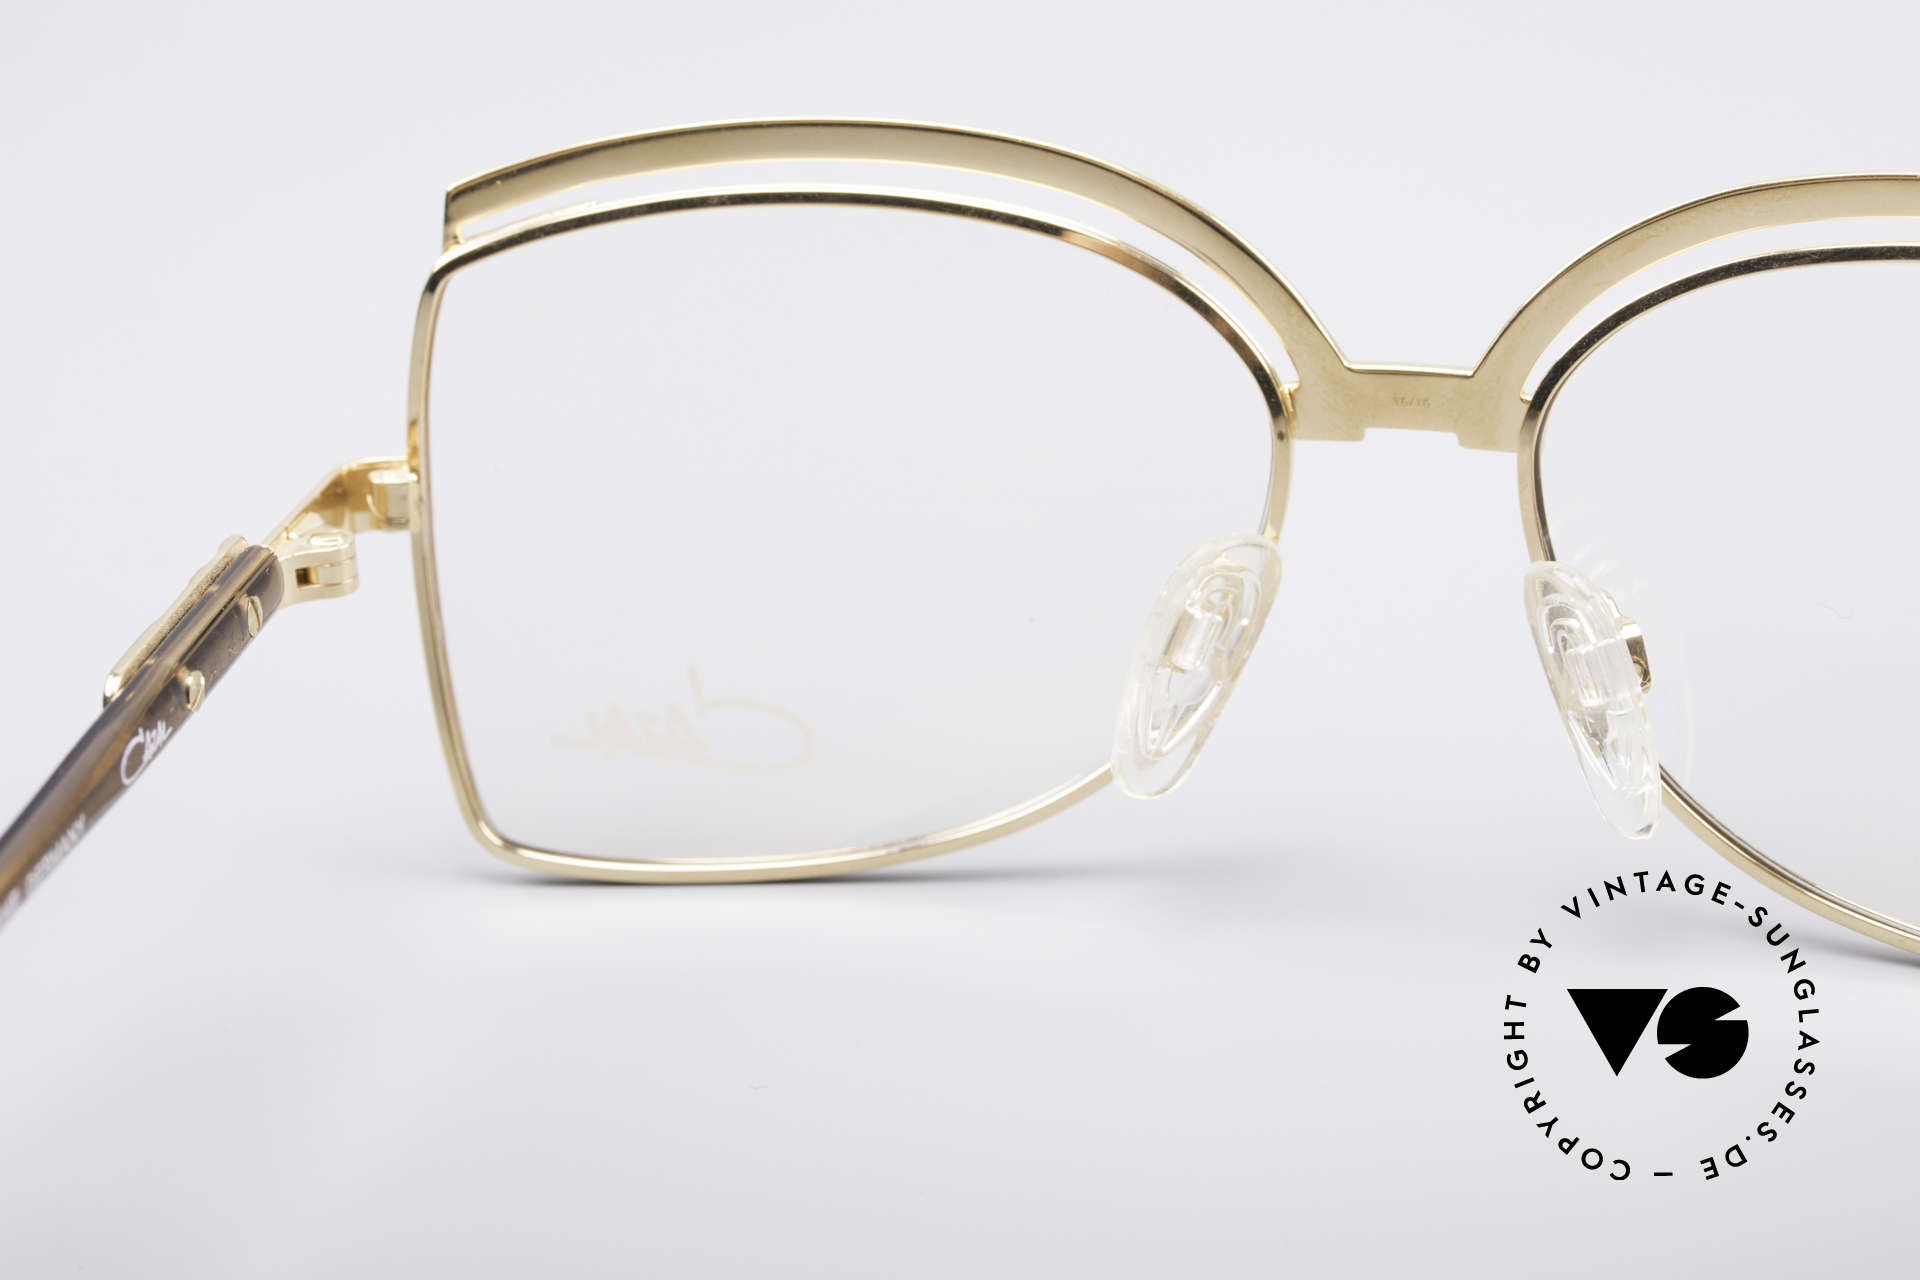 Cazal 240 90's Ladies Designer Frame, demo lenses should be replaced with prescriptions, Made for Women